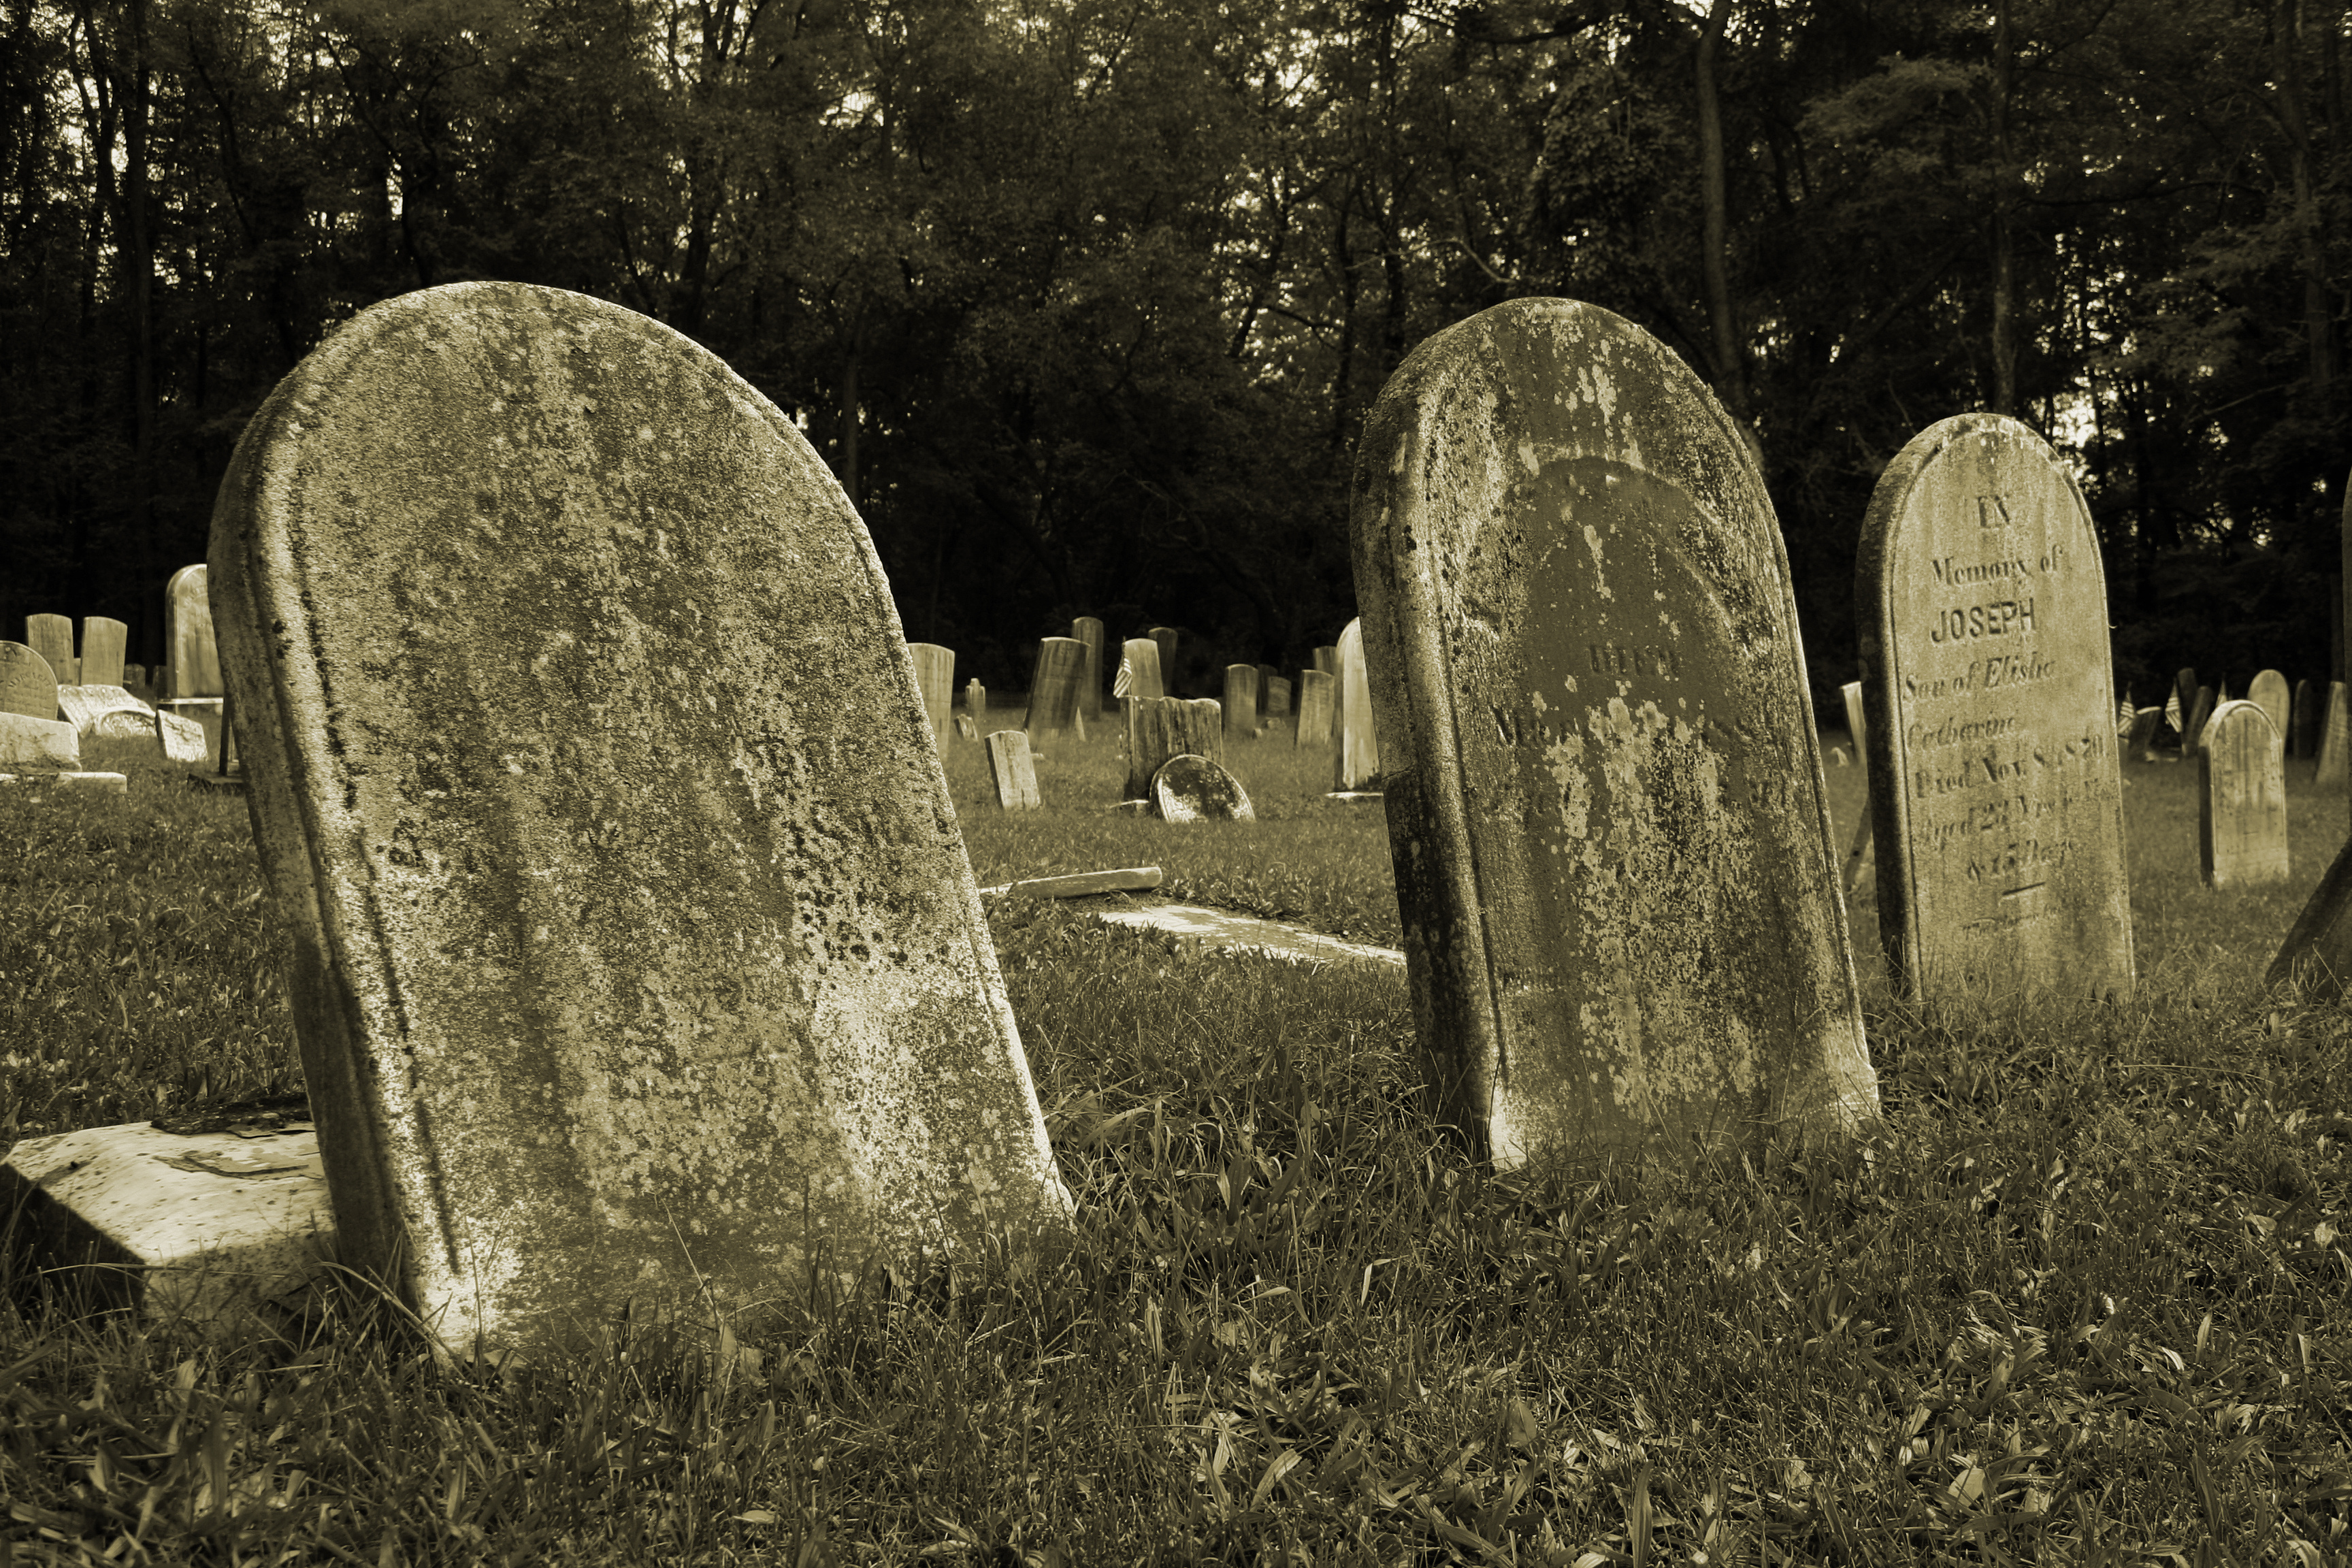 Old Gravestones haunted houses in Loveland, Colorado